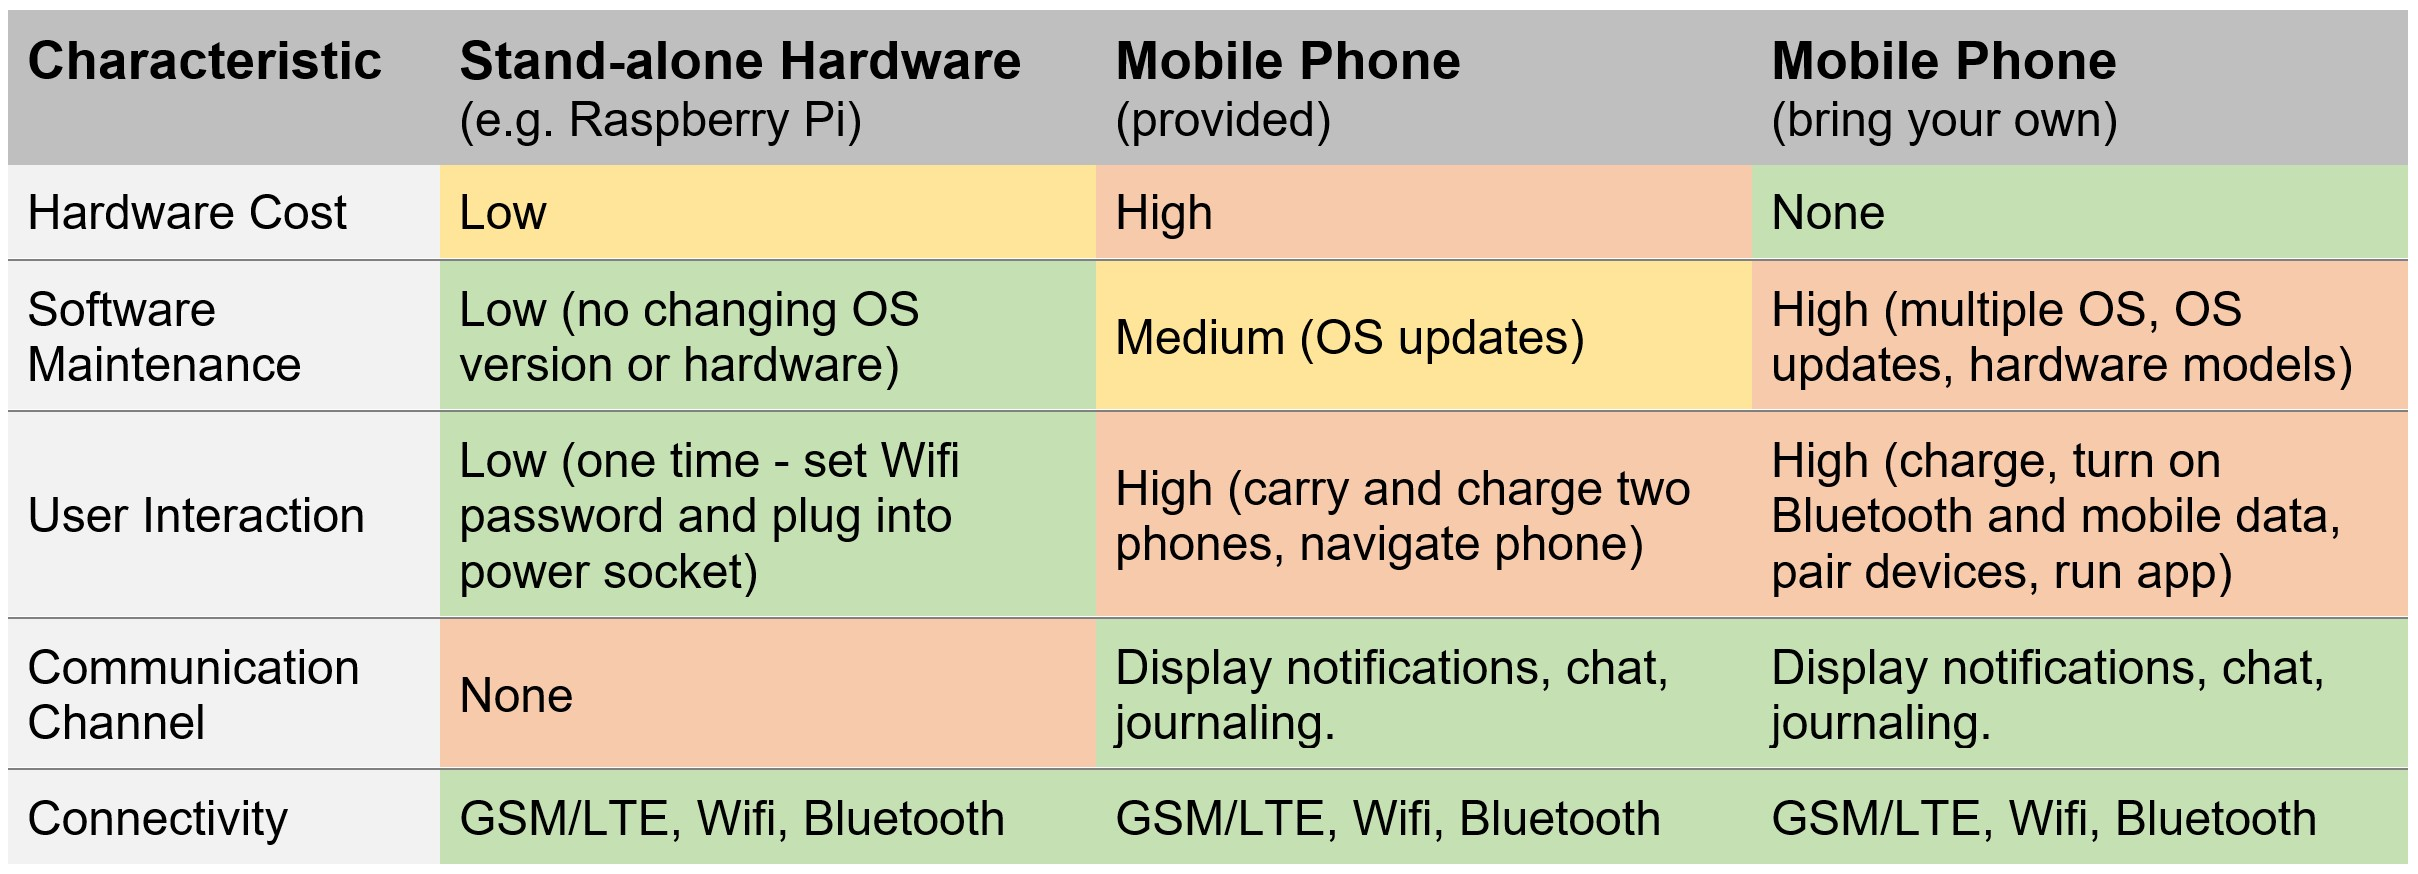 table summarizing the pros and cons of using standalone hardware like the Raspberry Pi versus mobile phones as gateways for wearable devices. The main advantage of standalone hardware is robustness and low user interaction, while mobile phones provide a communication channel to the patient.